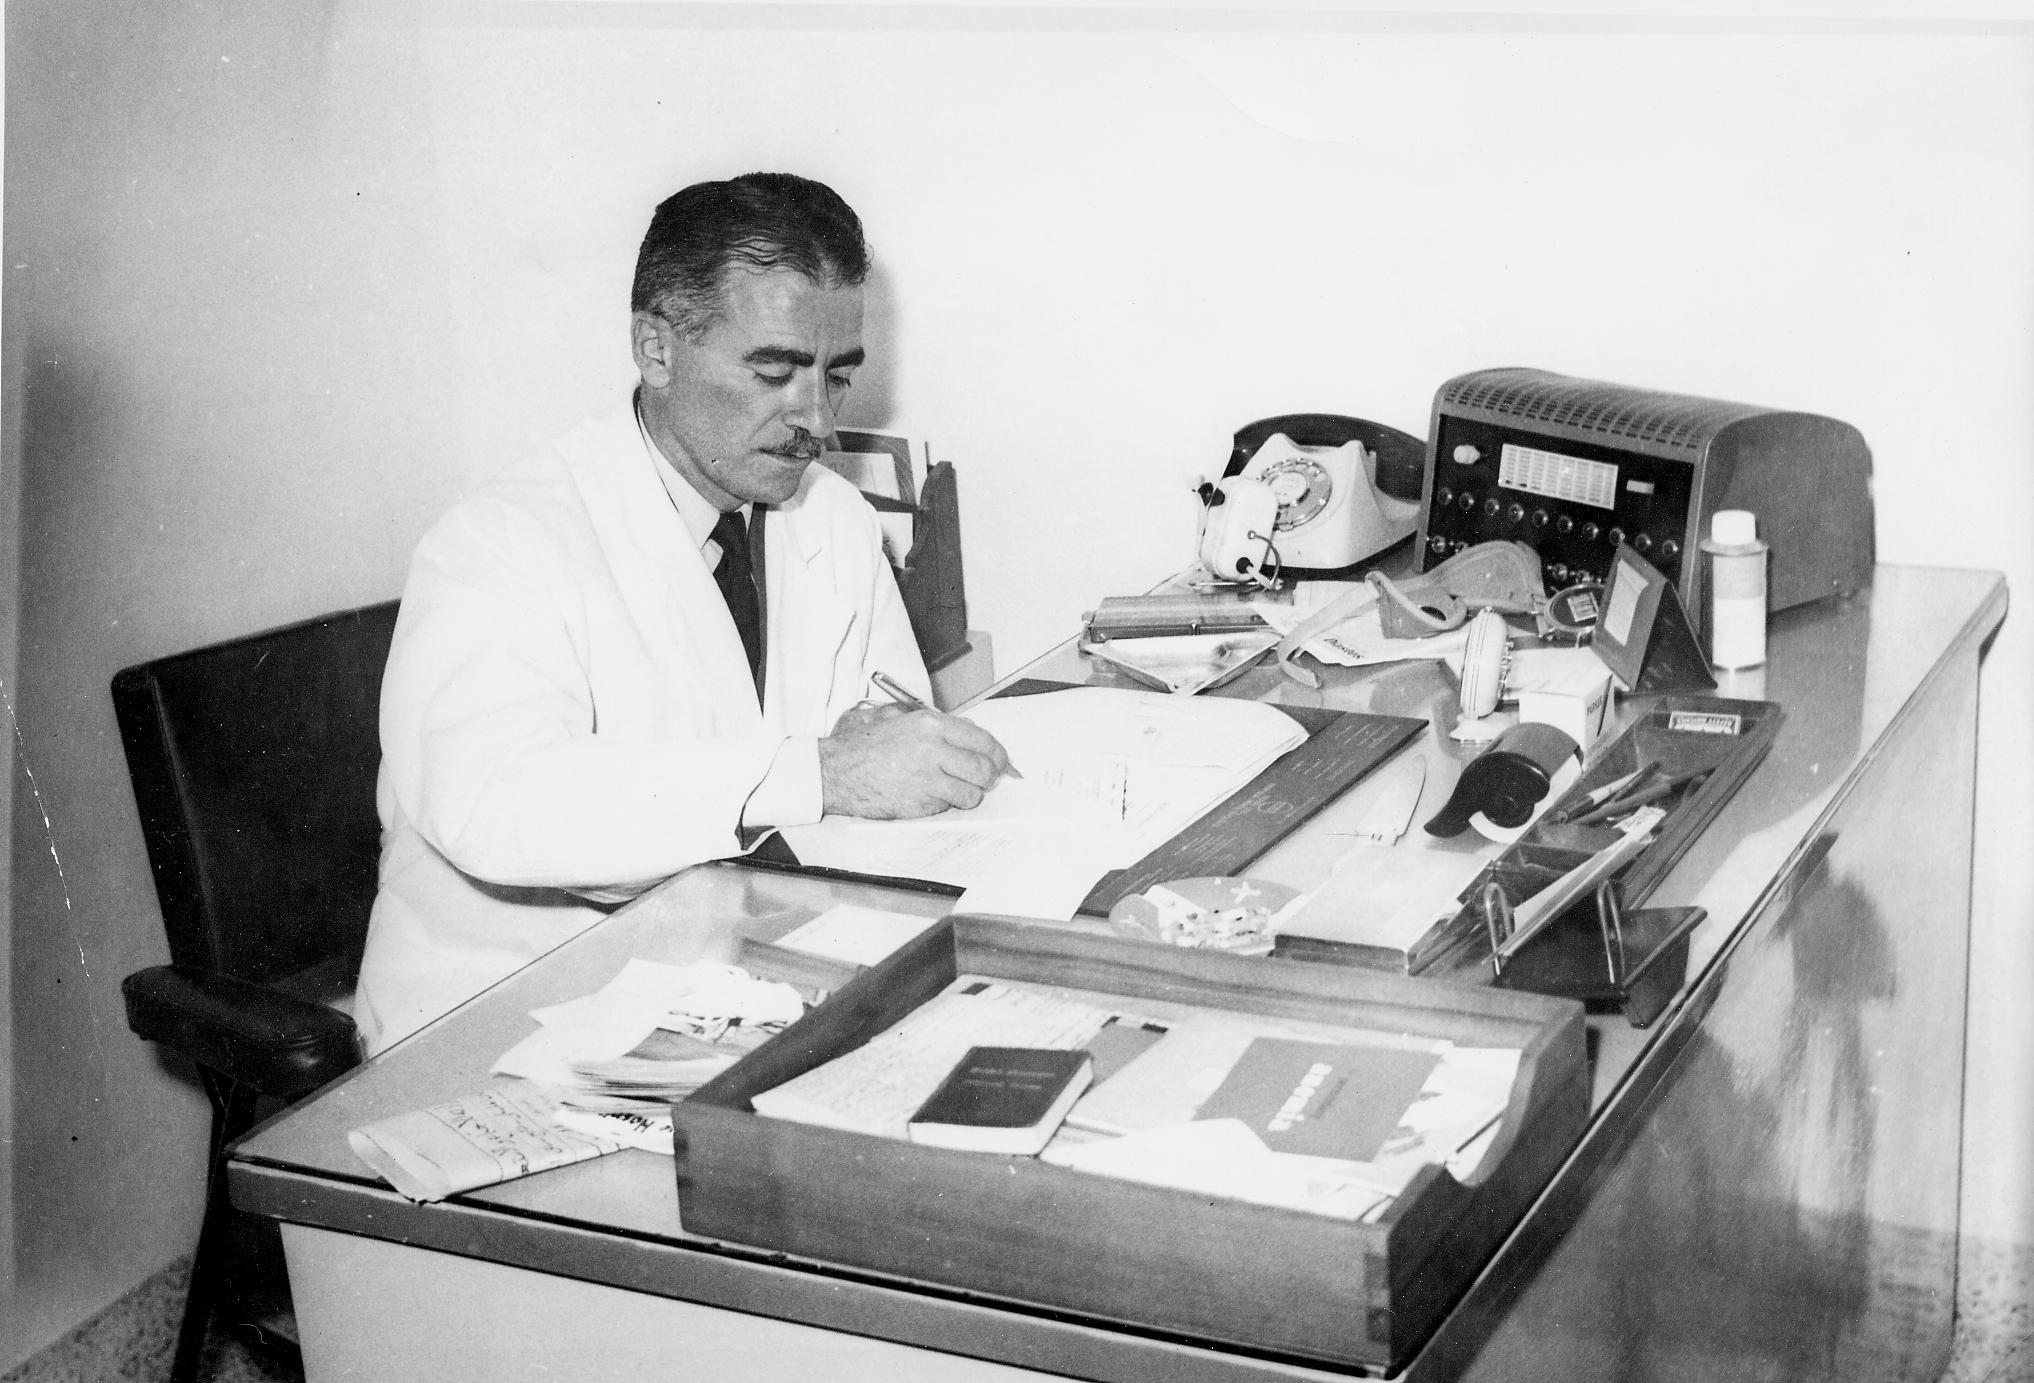 Dr. Sami Khoury in his clinic at Palestine Hospital in 1960 Amman Jordan writting prescription after seeing a patient